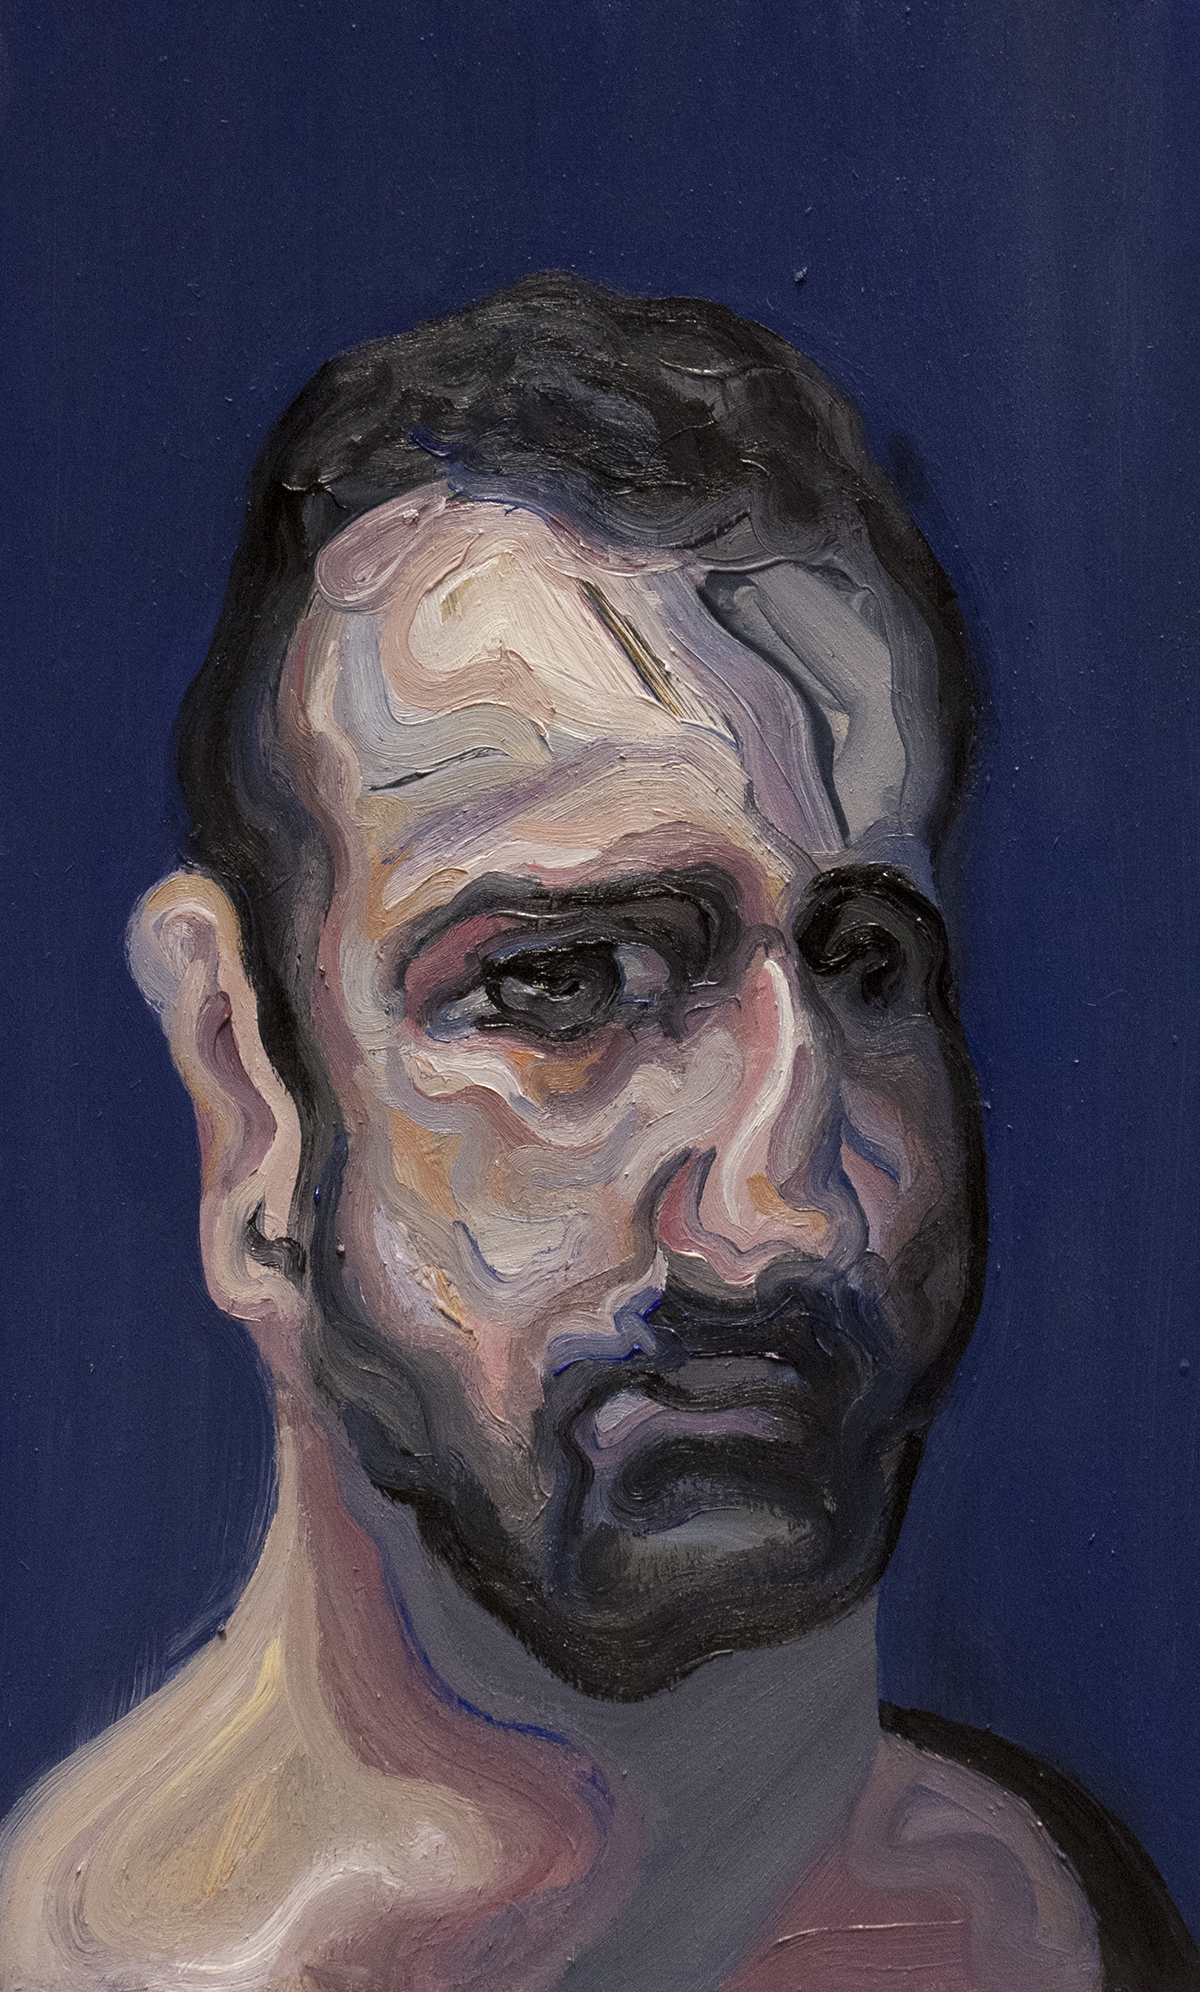 Mr. Silver Eye (Self Portrait) / Oil on Wood / 22.5 x 37.5 cm / 2017